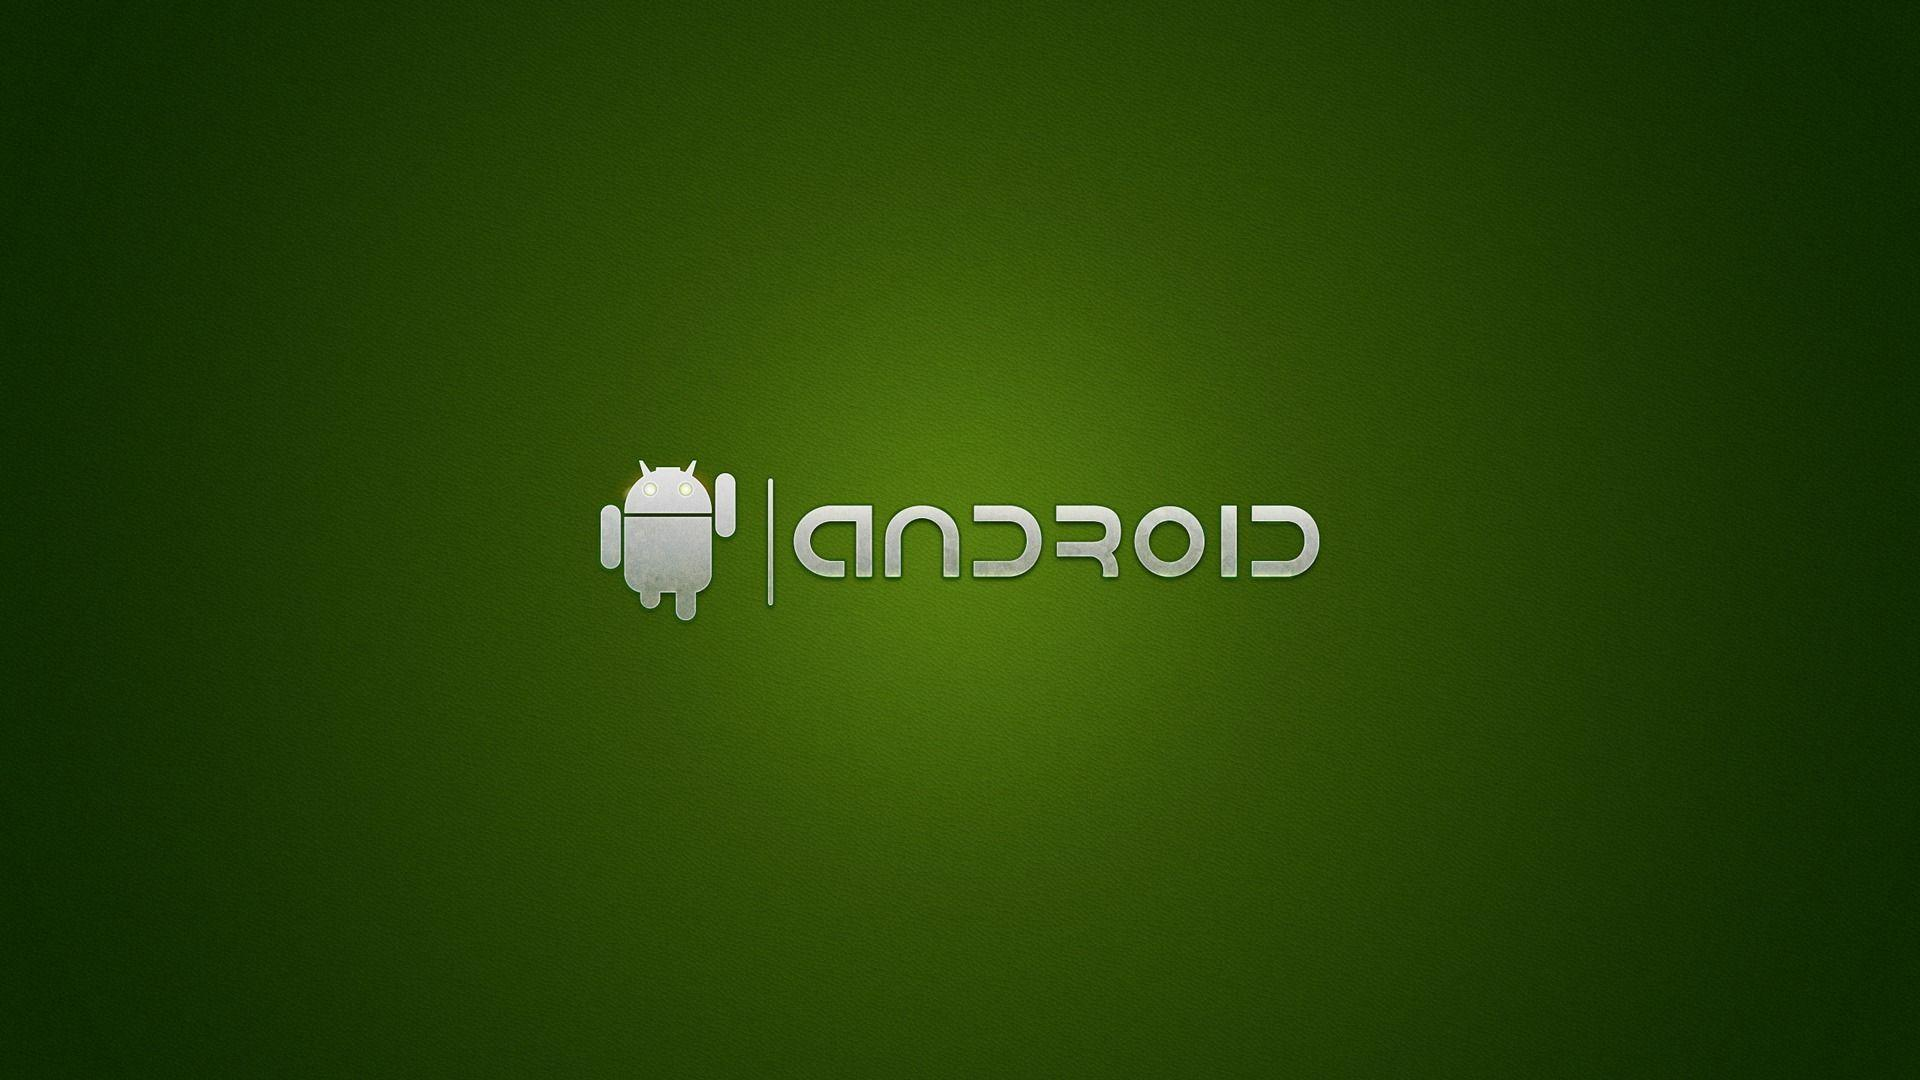 Android Backgrounds Desktop Backgrounds